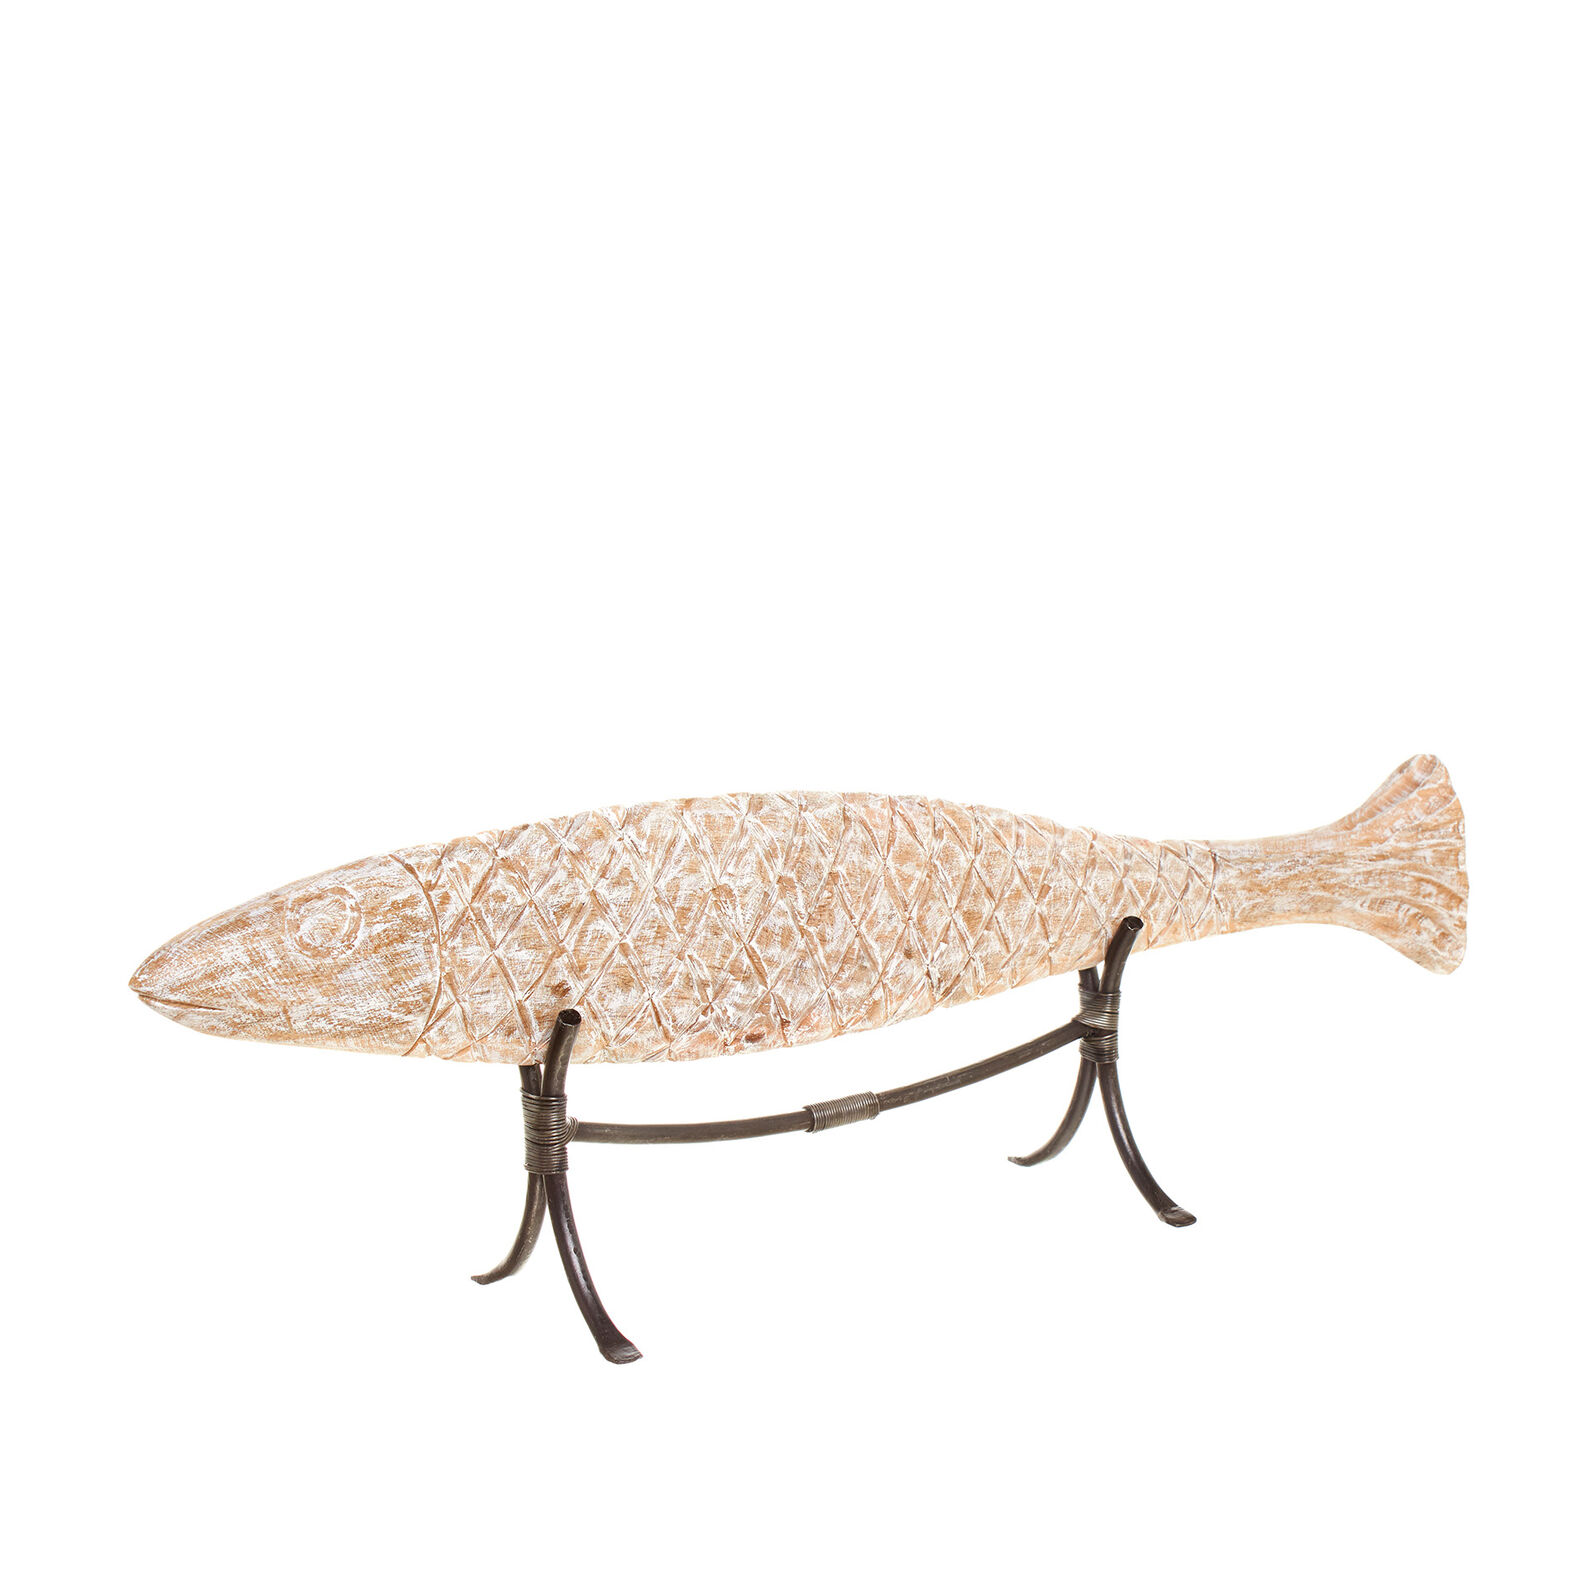 Hand carved wood fish